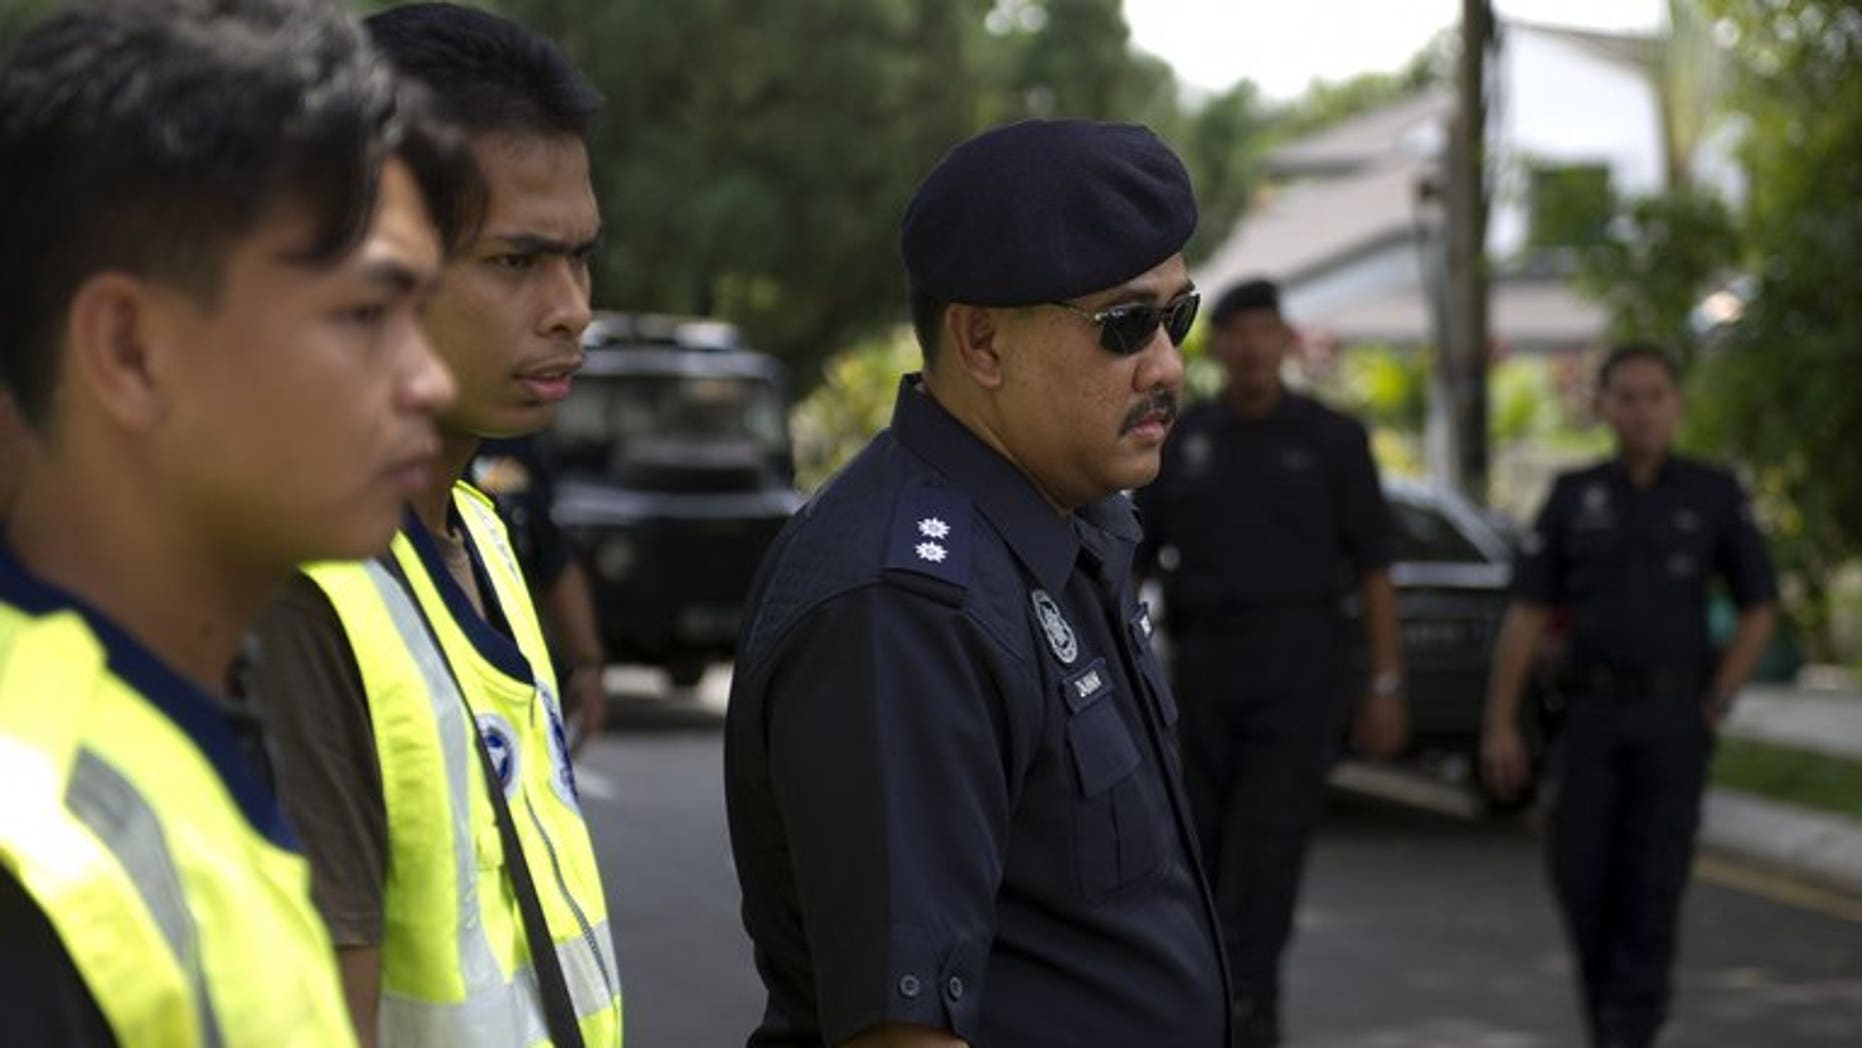 Malaysian police officers pictured during a road block in downtown Kuala Lumpur on March 16, 2012. Six family members who suffocated a Malaysian toddler to death by piling on top of her for hours in a suspected exorcism ritual have been fined but avoided jail, a report said Saturday.